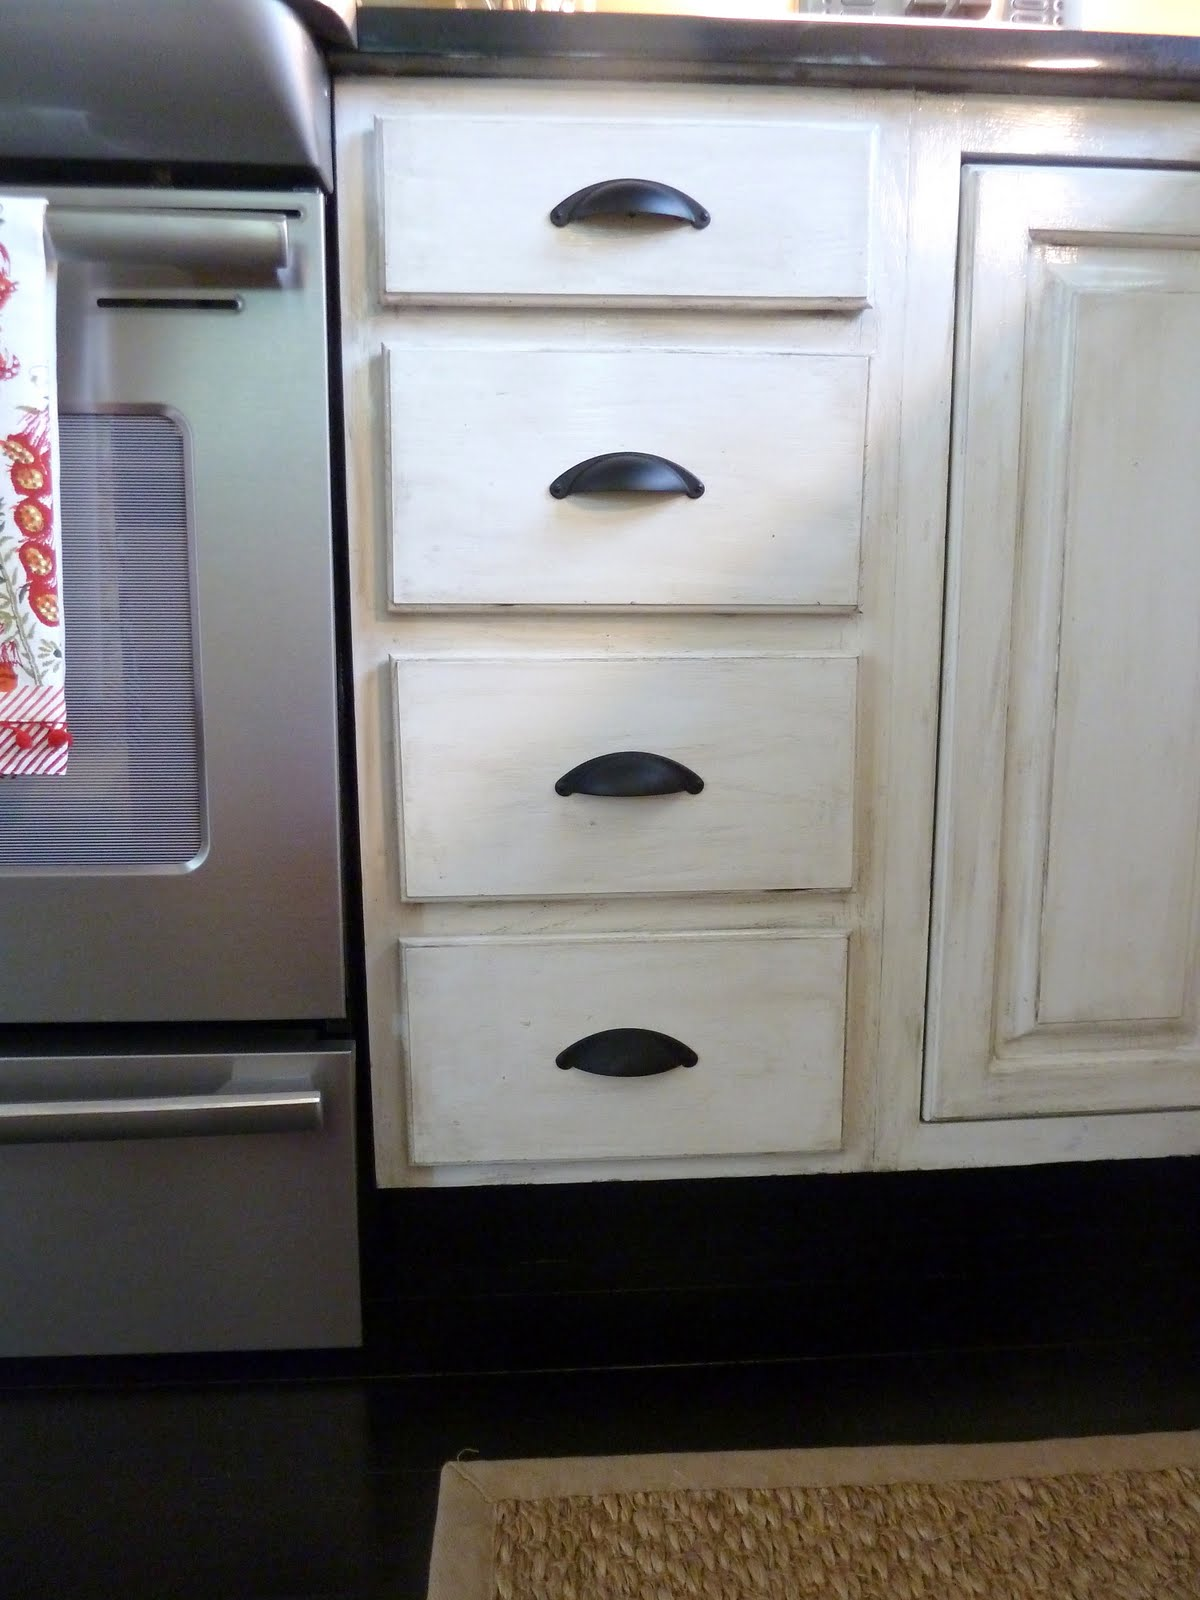 Our fifth house distressed kitchen cabinets how to for Kitchen cabinets